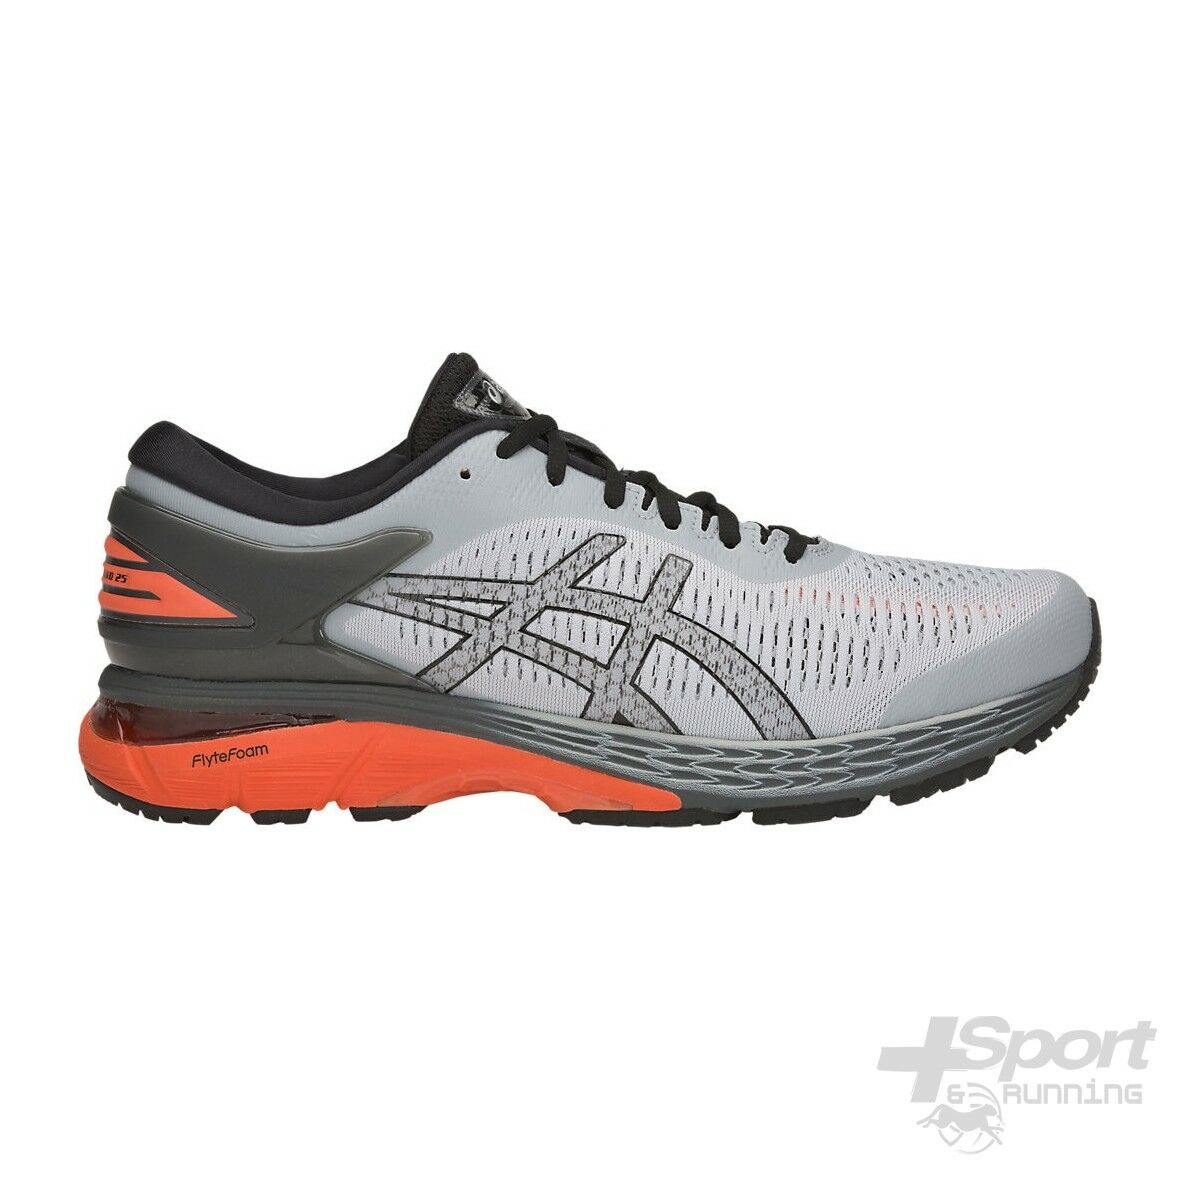 sautope correrening Asics Gel Kayano 25 uomini - 1011a019-022  nuovo collezione EP 19